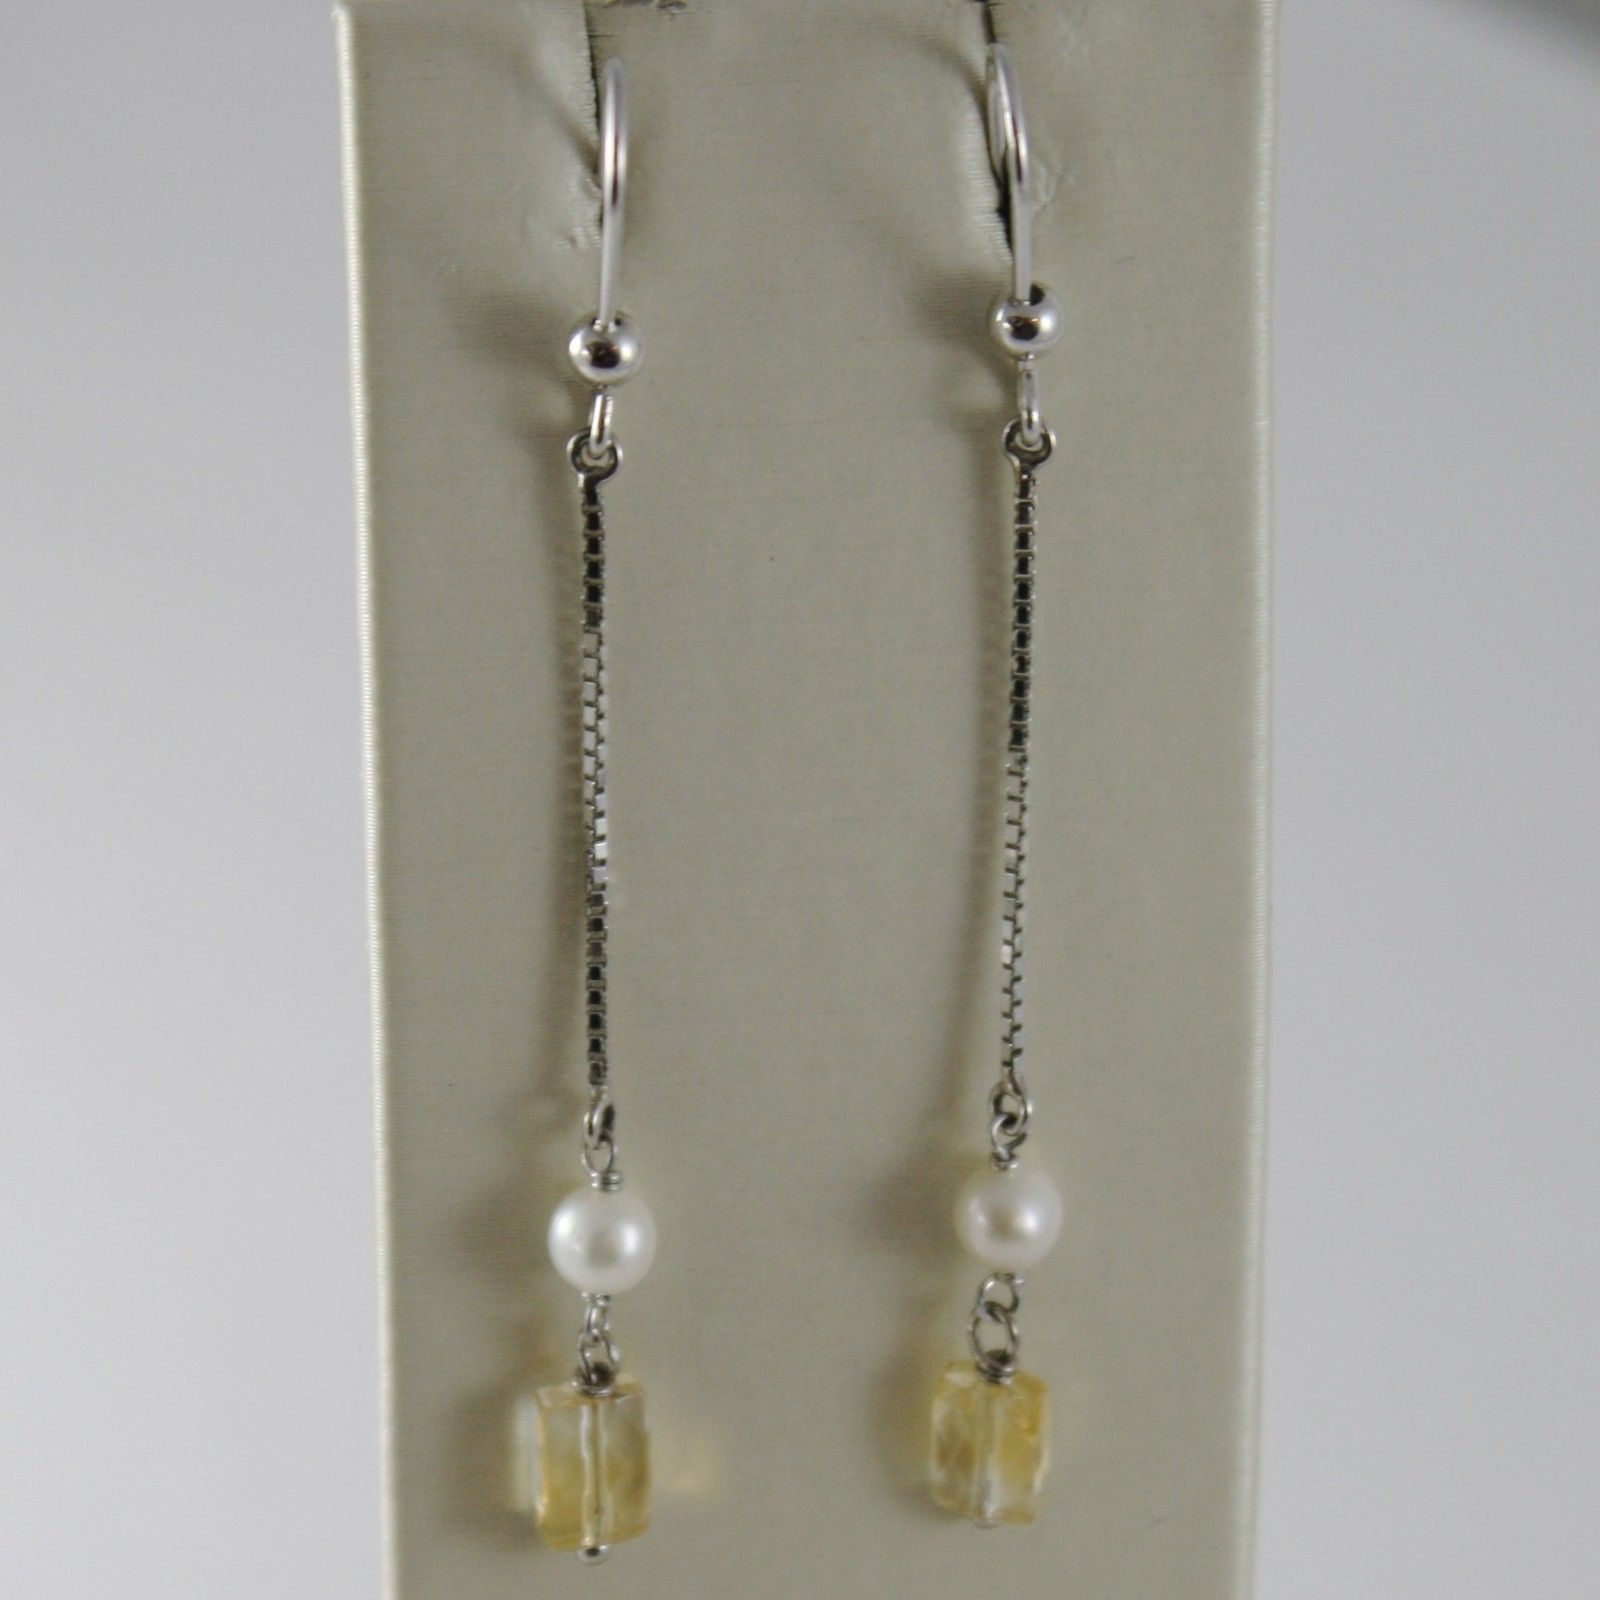 SOLID 18K WHITE GOLD PENDANT EARRINGS WITH CITRINE AND PEARL MADE IN ITALY